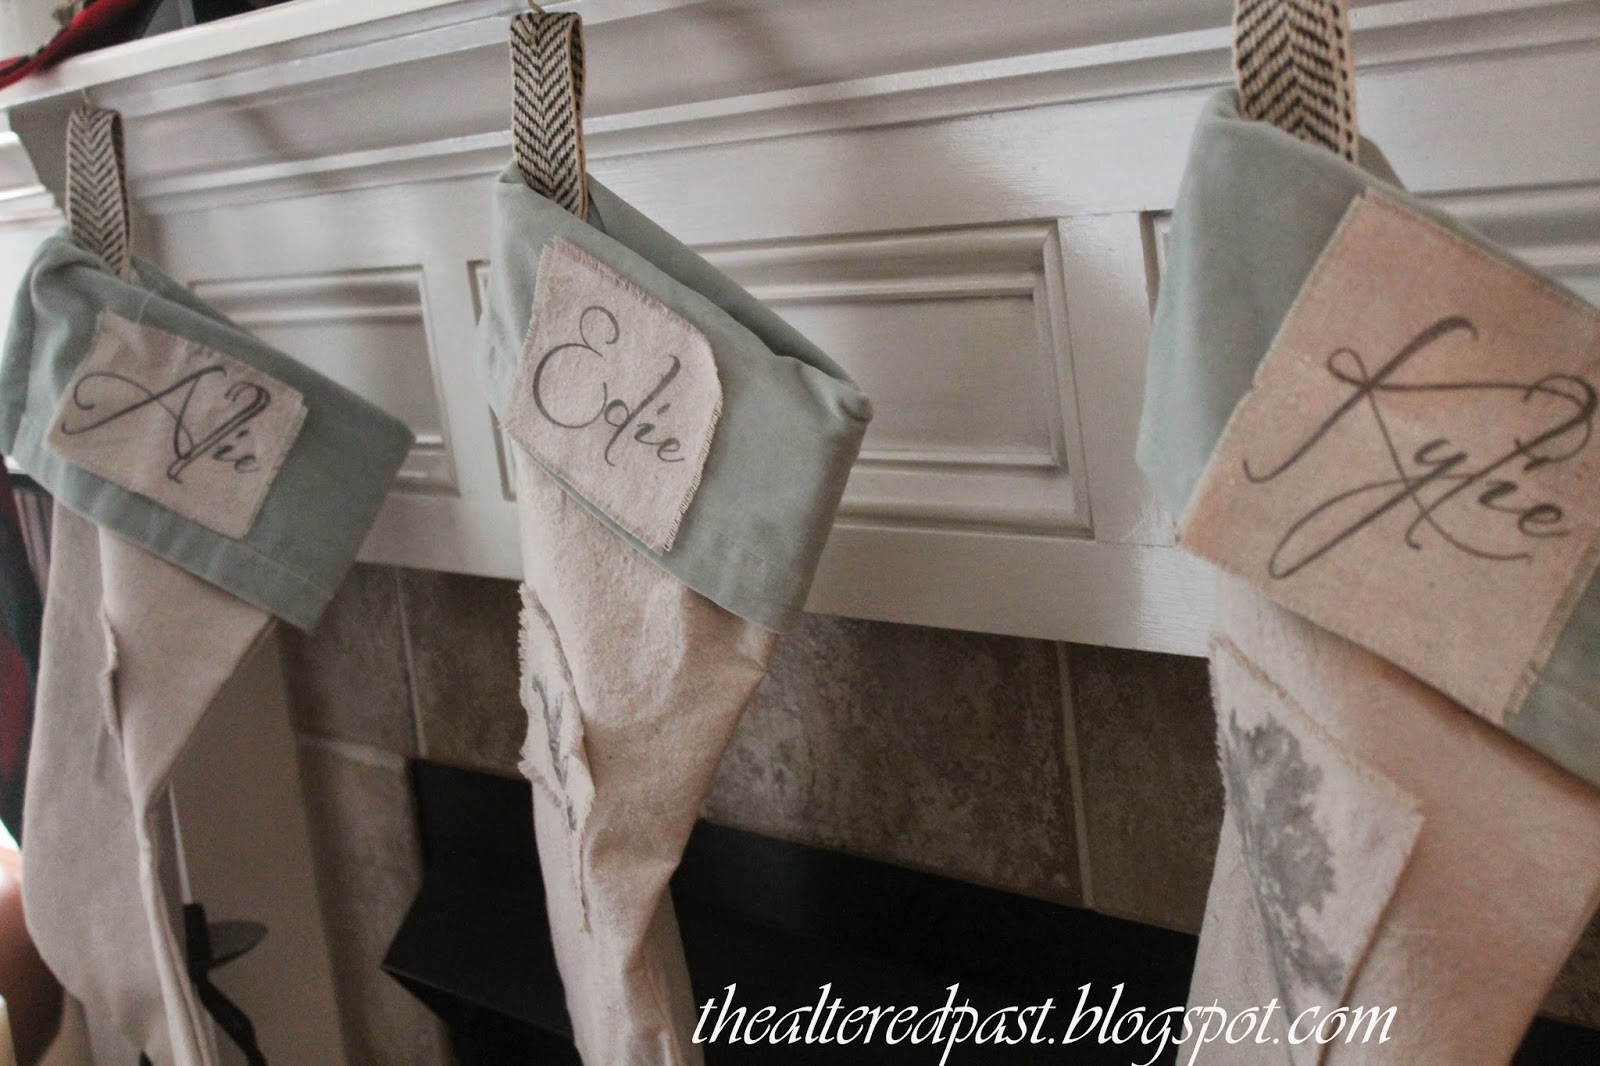 dropcloth and aqua velvet christmas stockings, the altered past